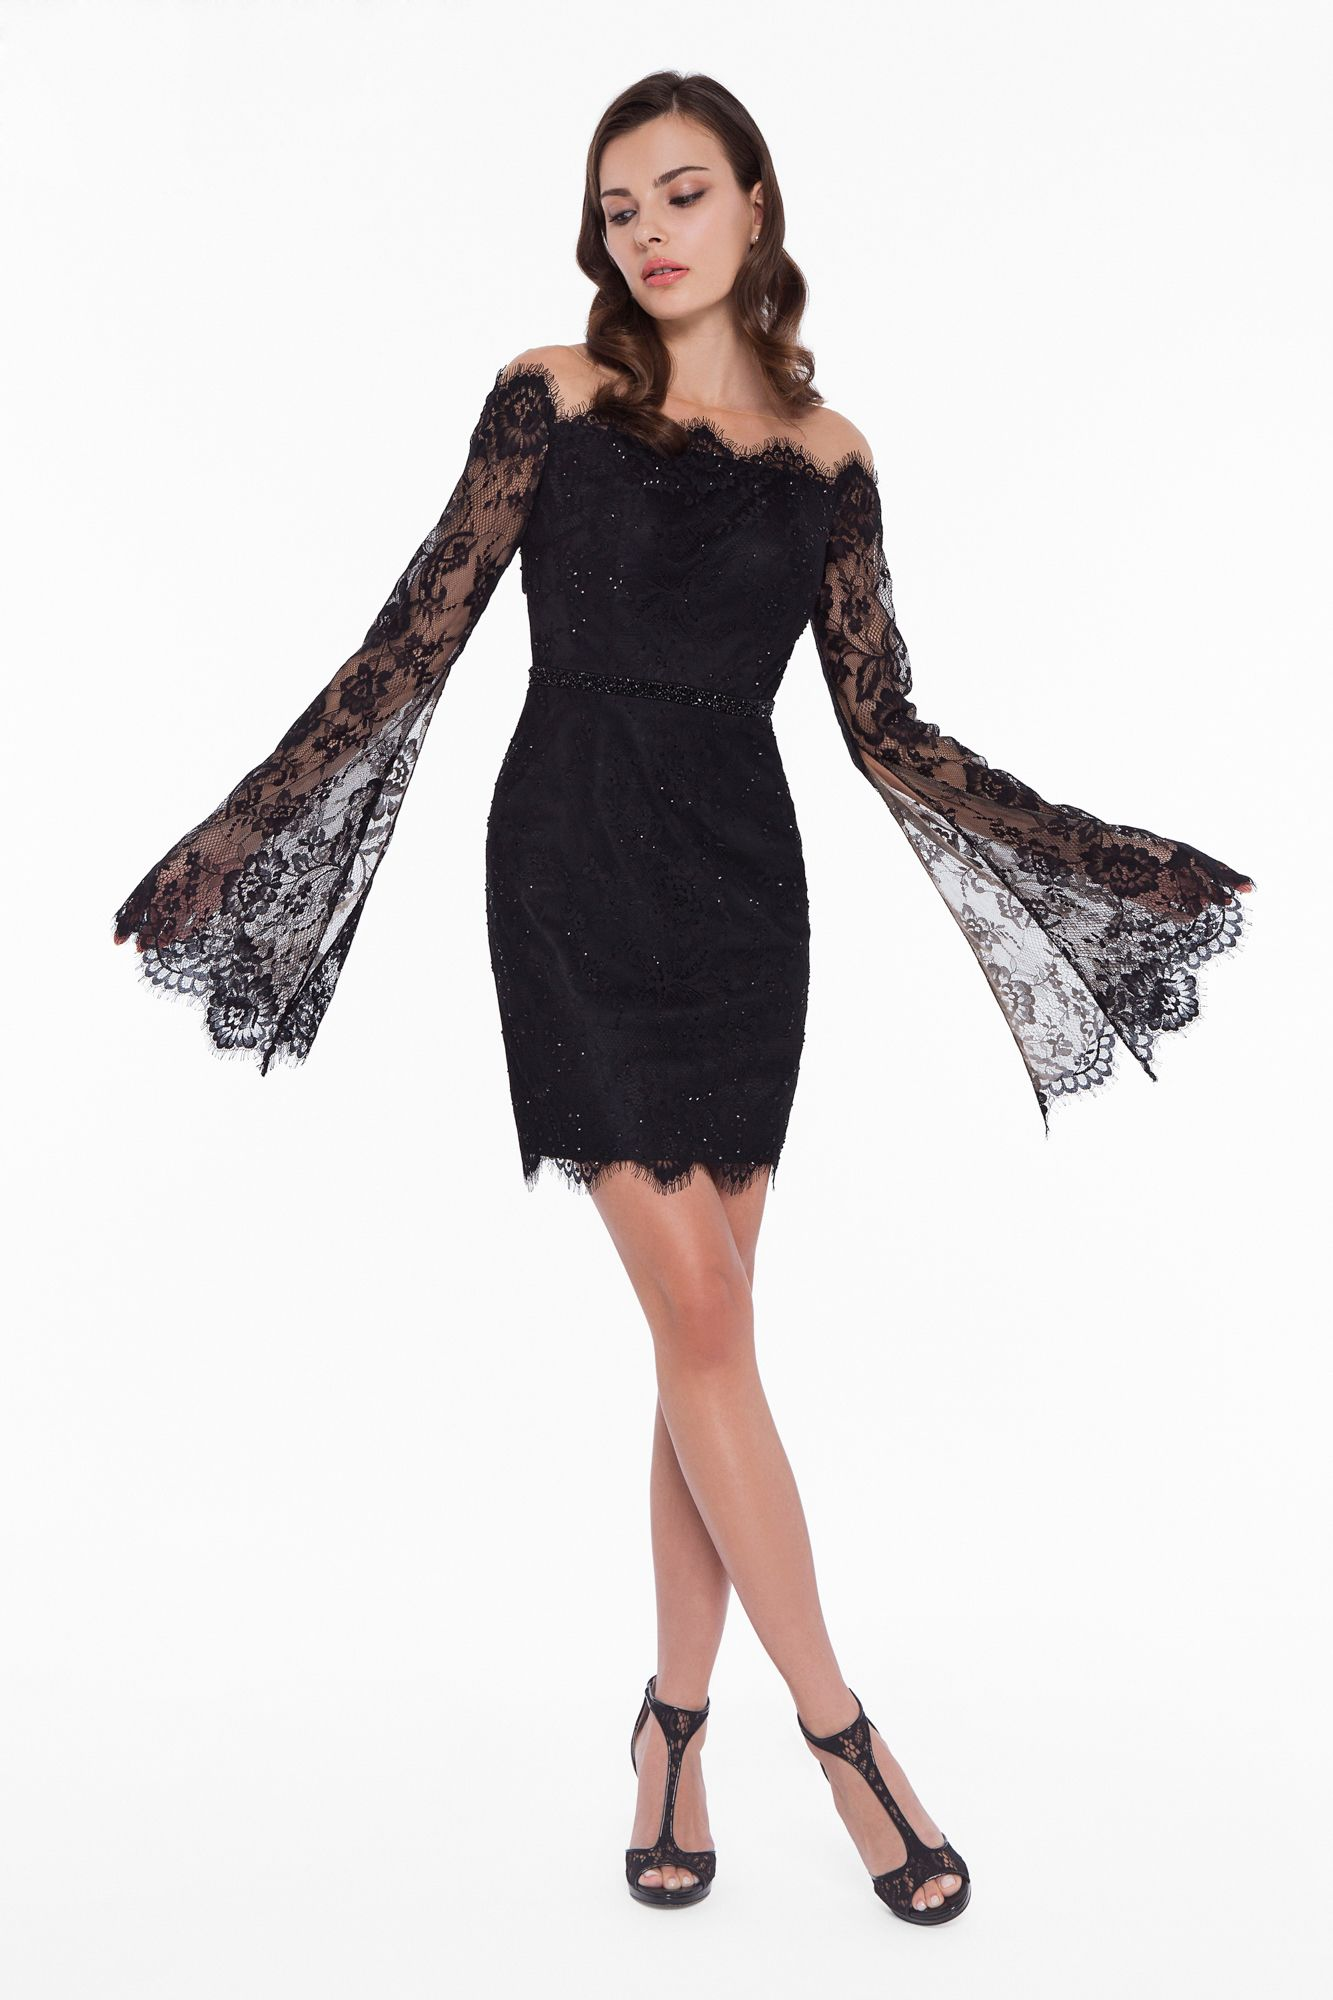 0c2010c1568 Be the crowds desire in the trendy Illusion Bateau Long Sleeve Lace Cutout Cocktail  Dress by Terani Couture. This eye-catching look features an illusion ...